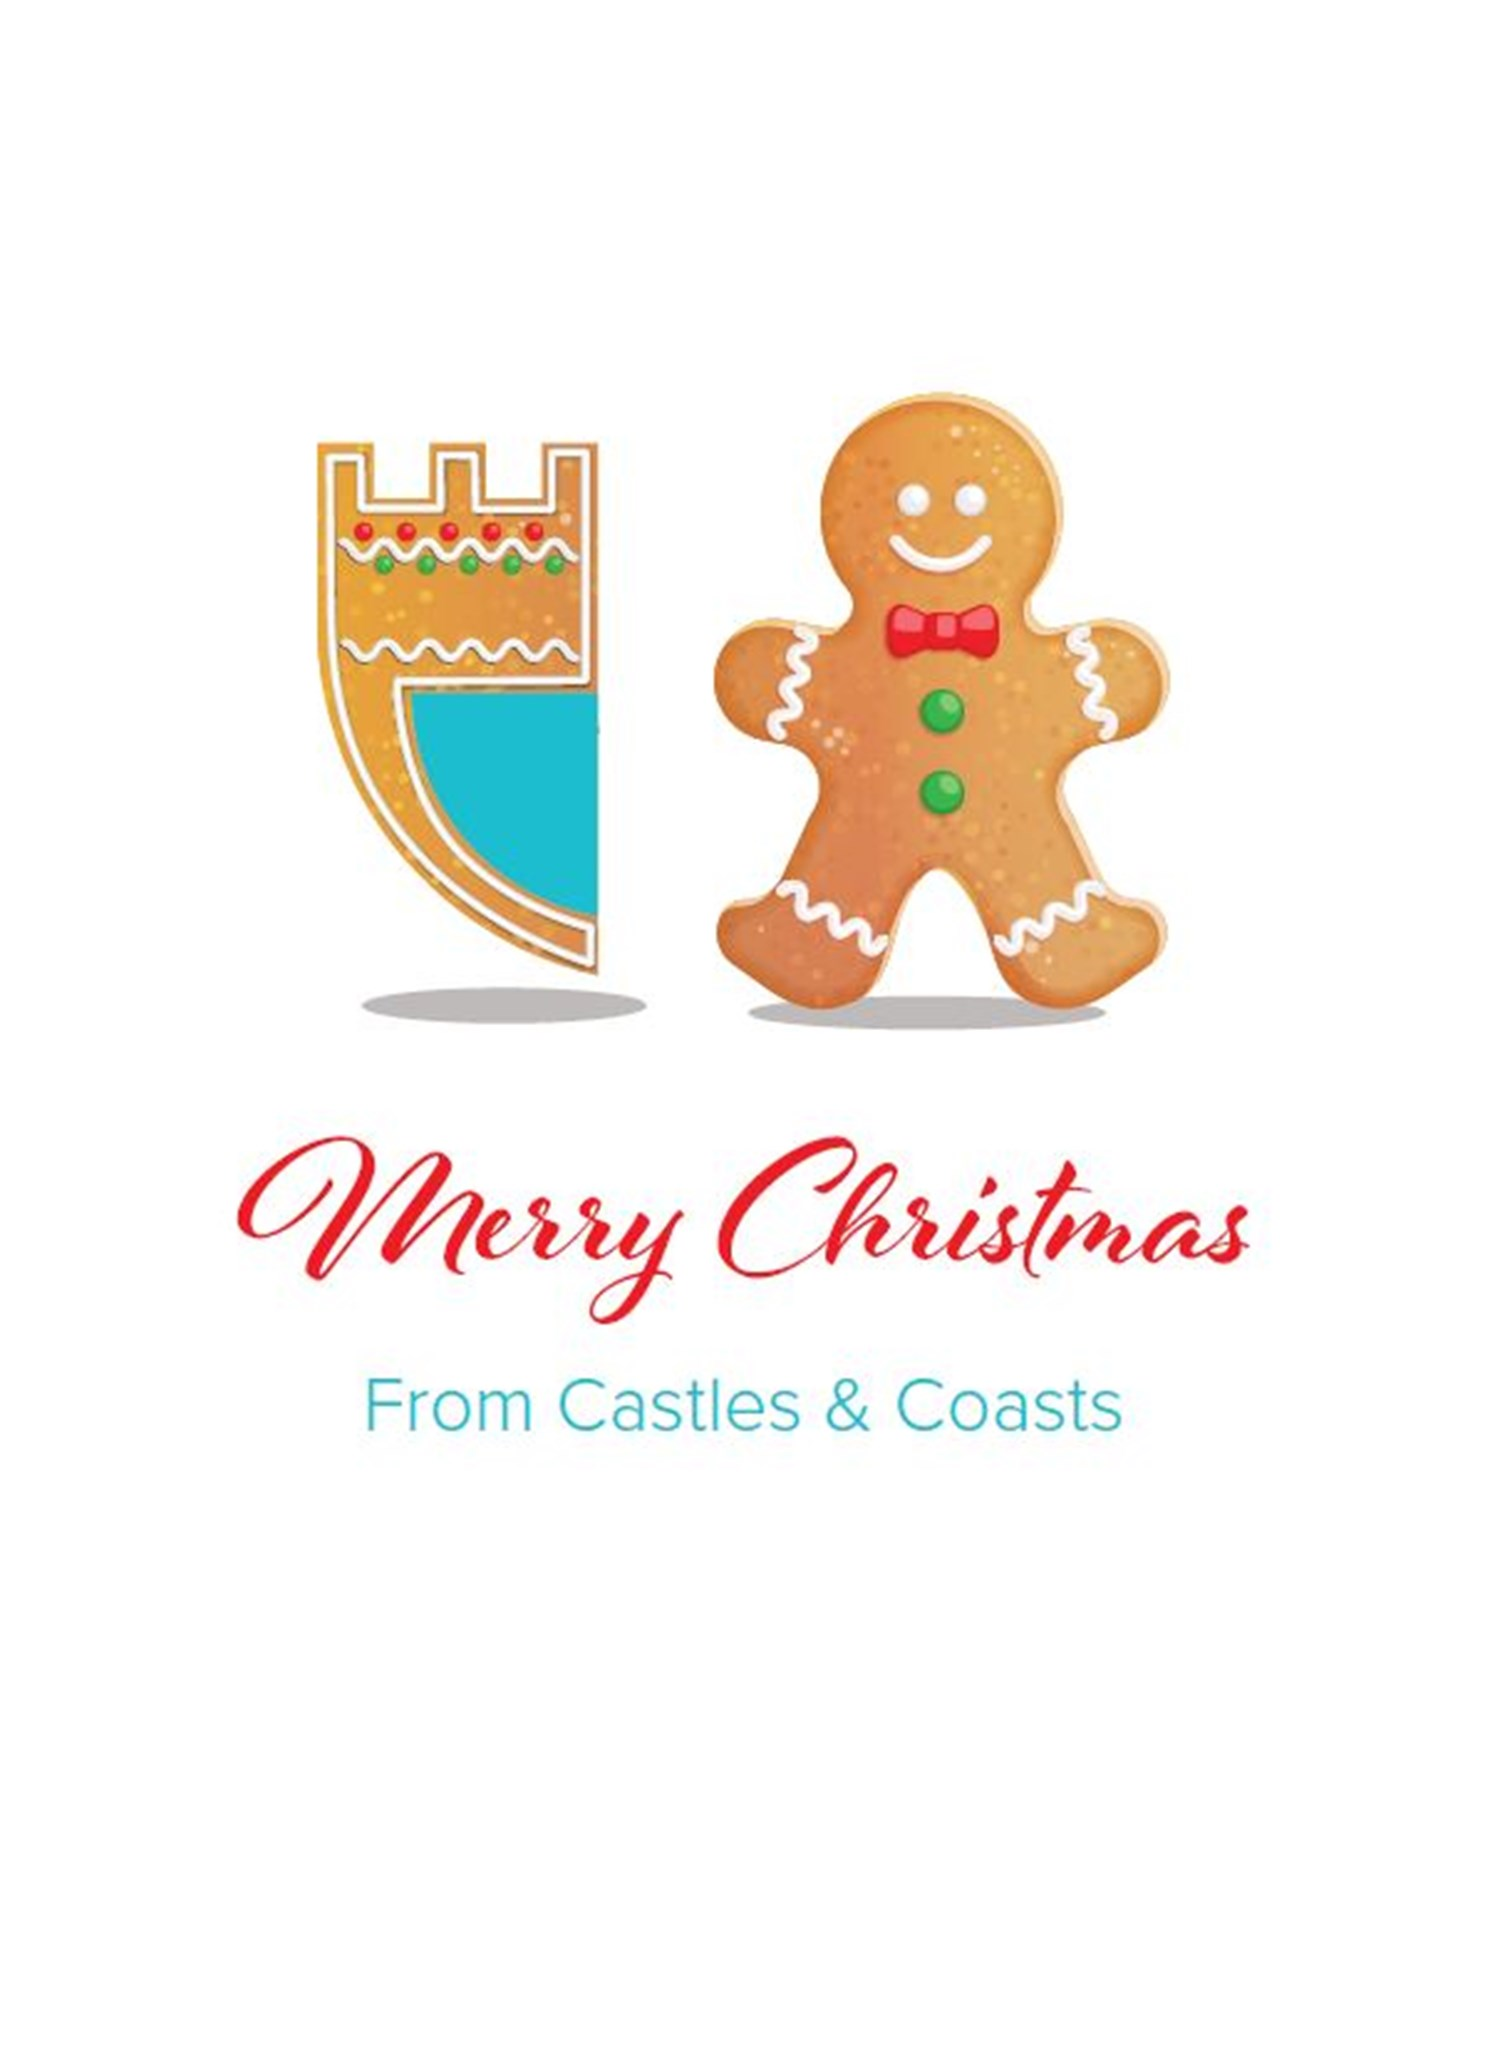 Merry Christmas from Castles & Coasts